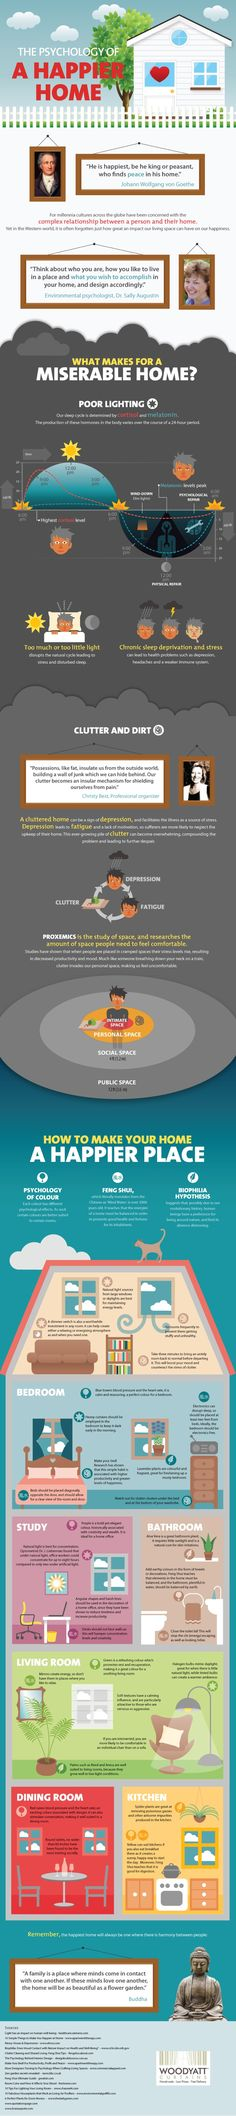 very interesting. the psychology of a happy home.